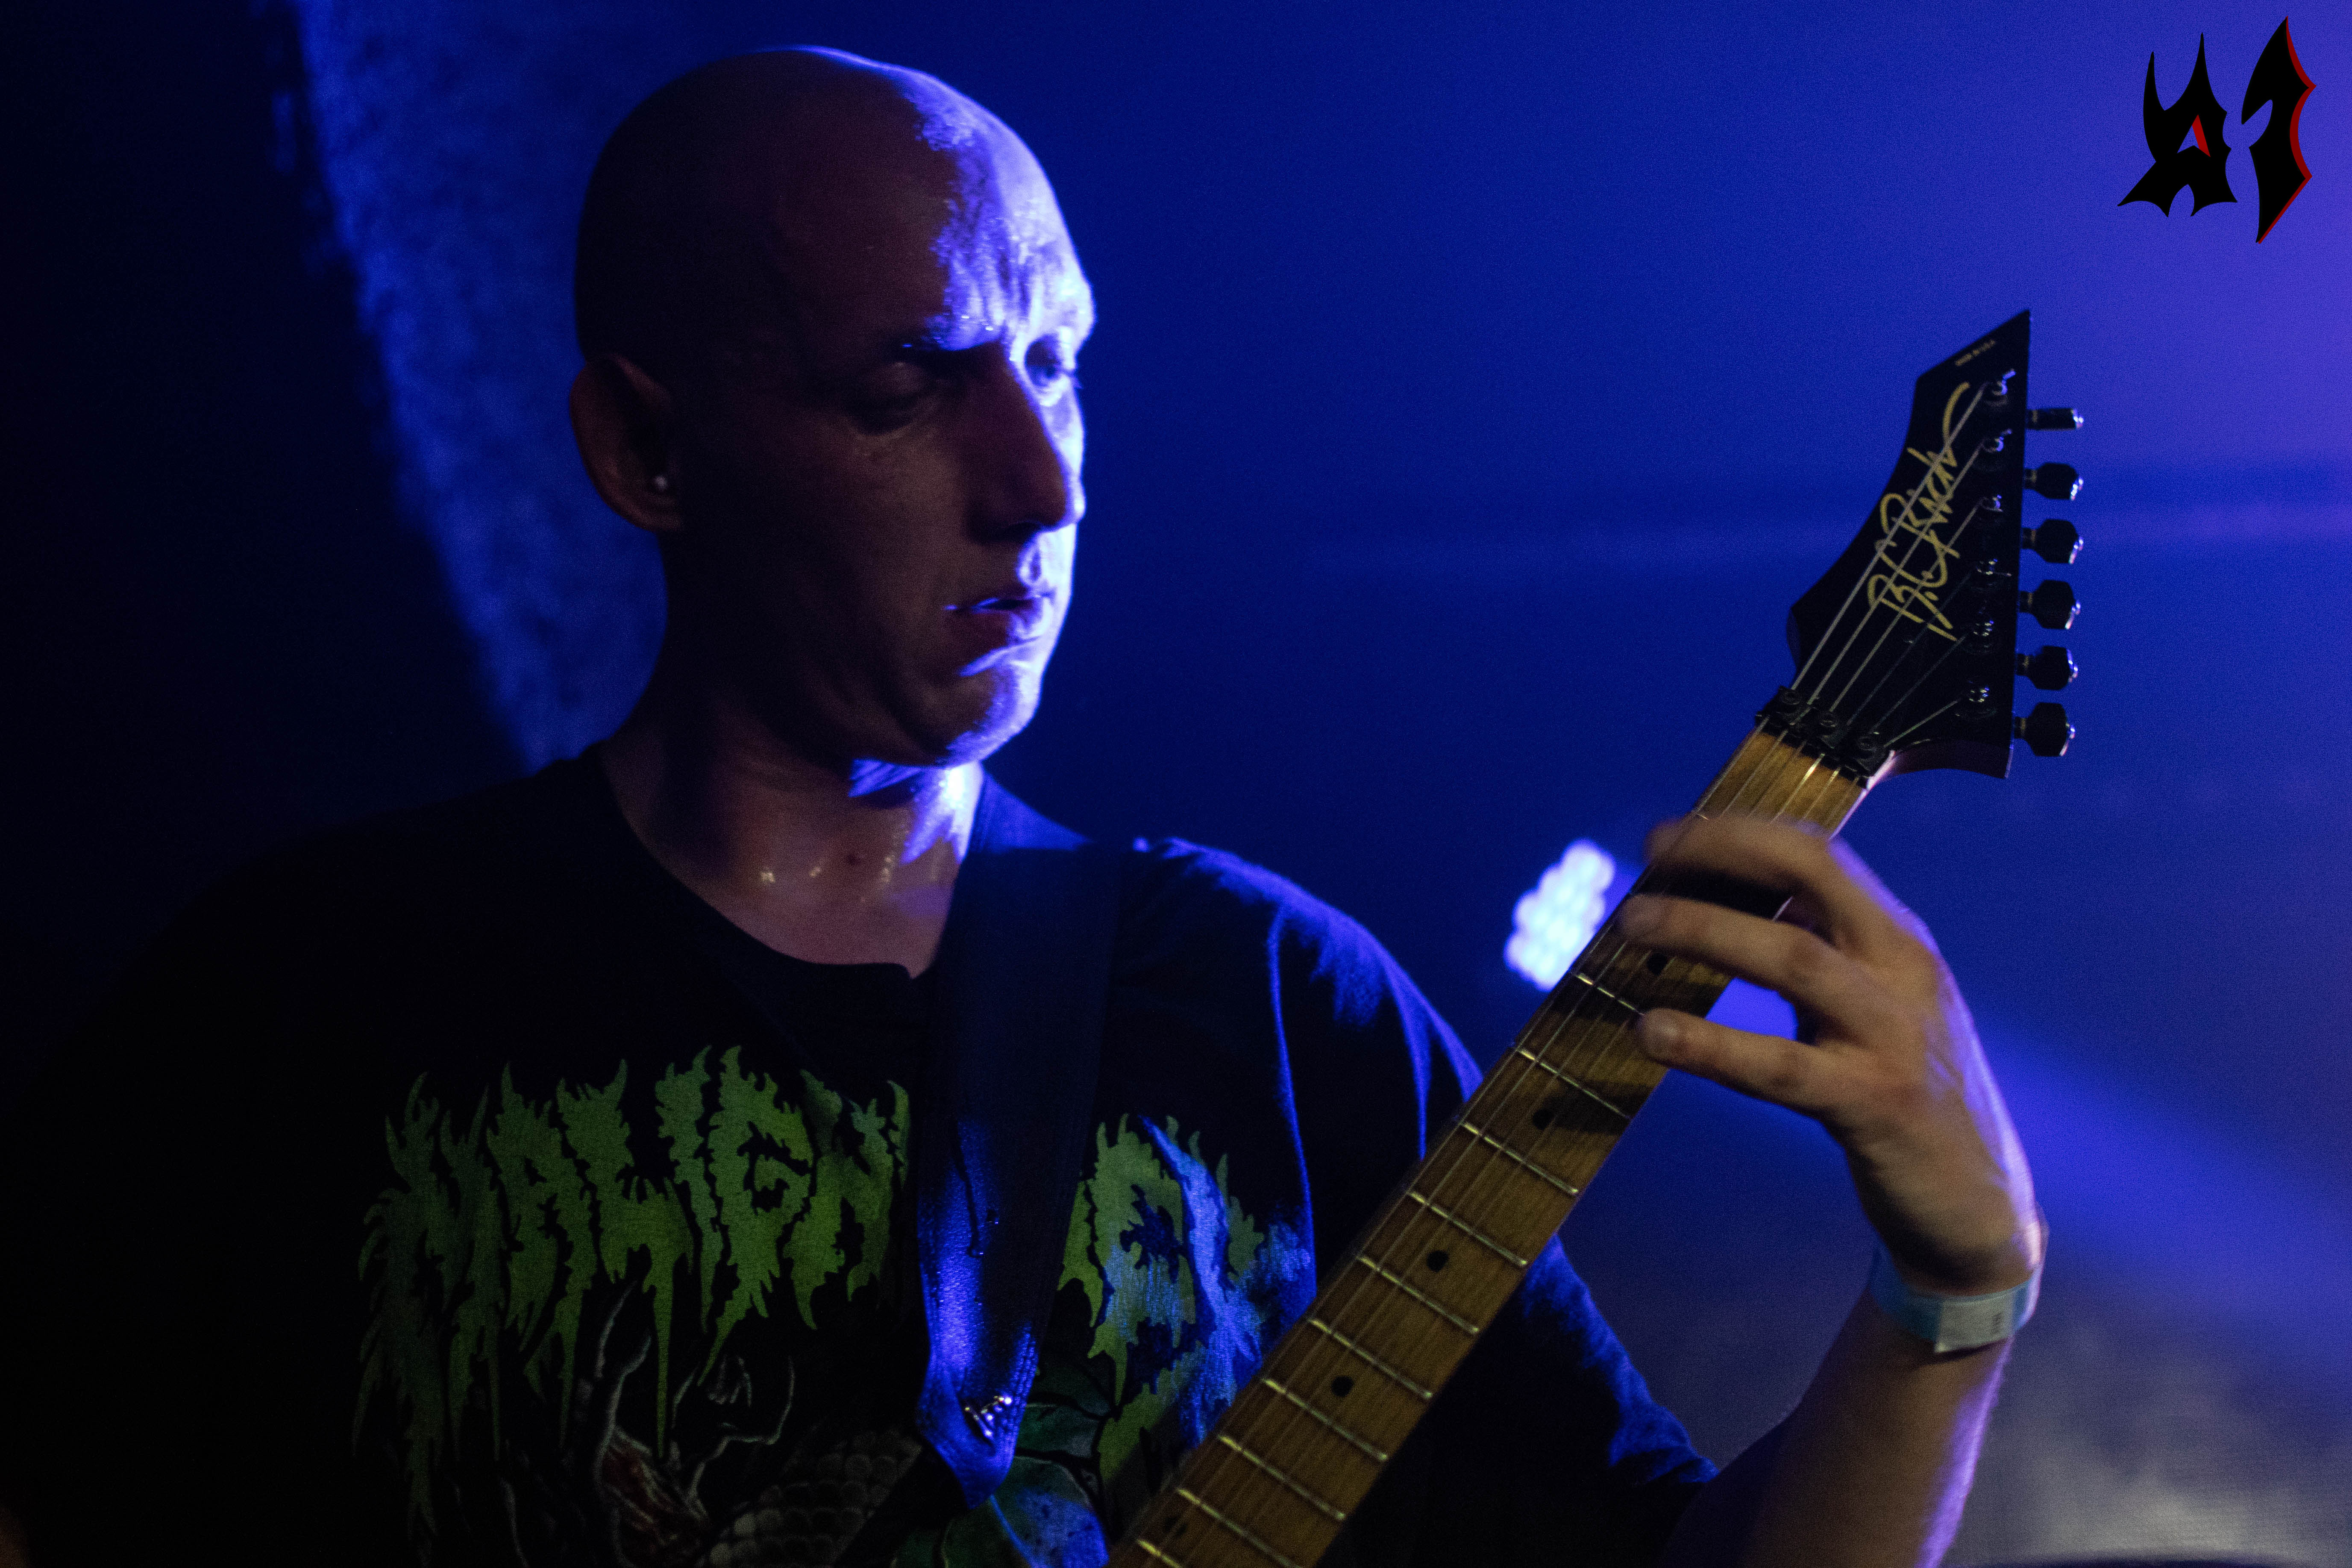 Defeated Sanity - 7